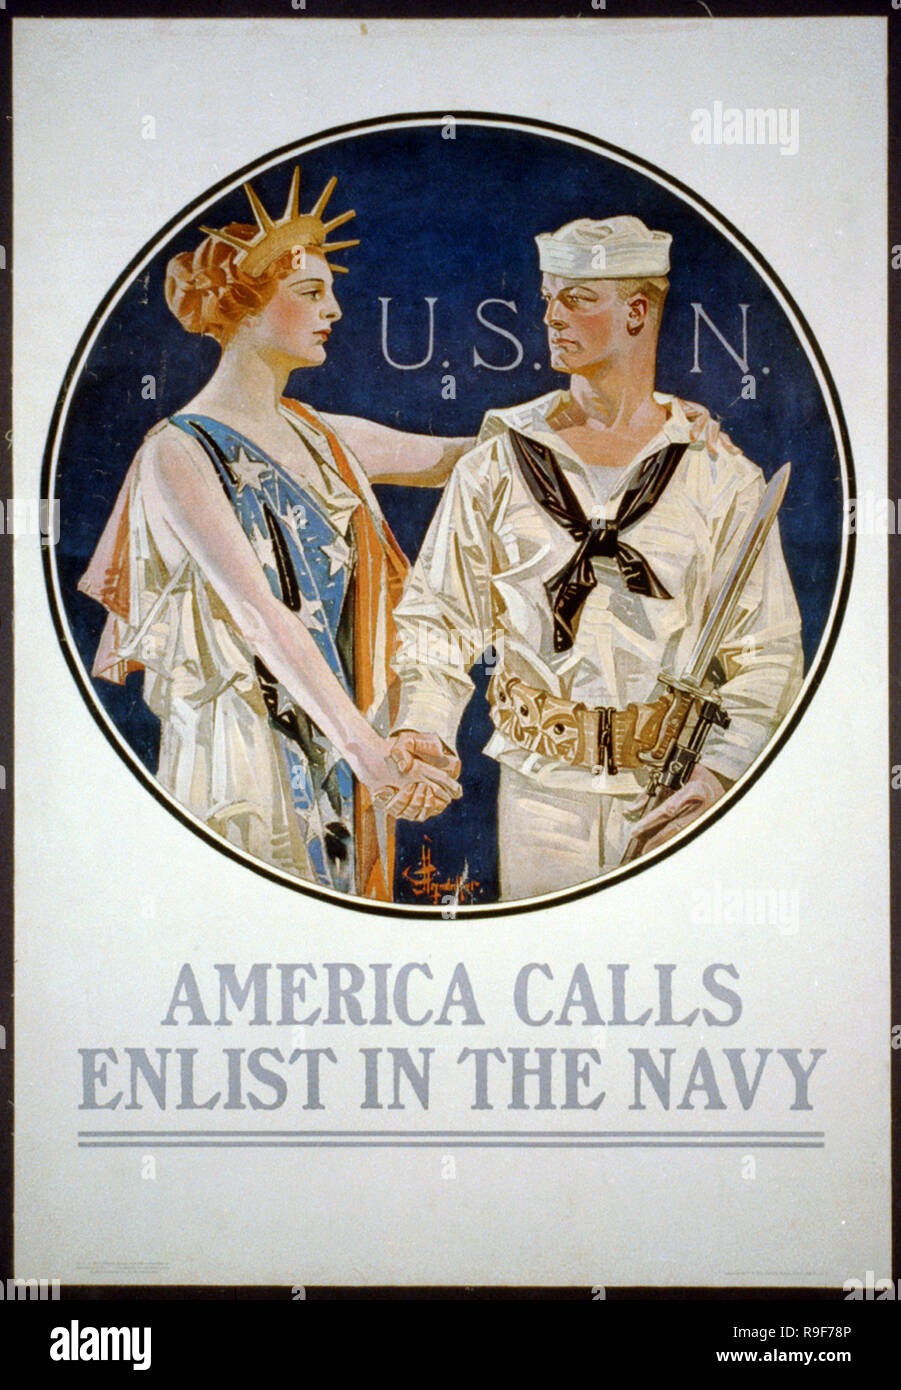 America calls, enlist in the Navy recruitment poster by J.C. Leyendecker. - Stock Image